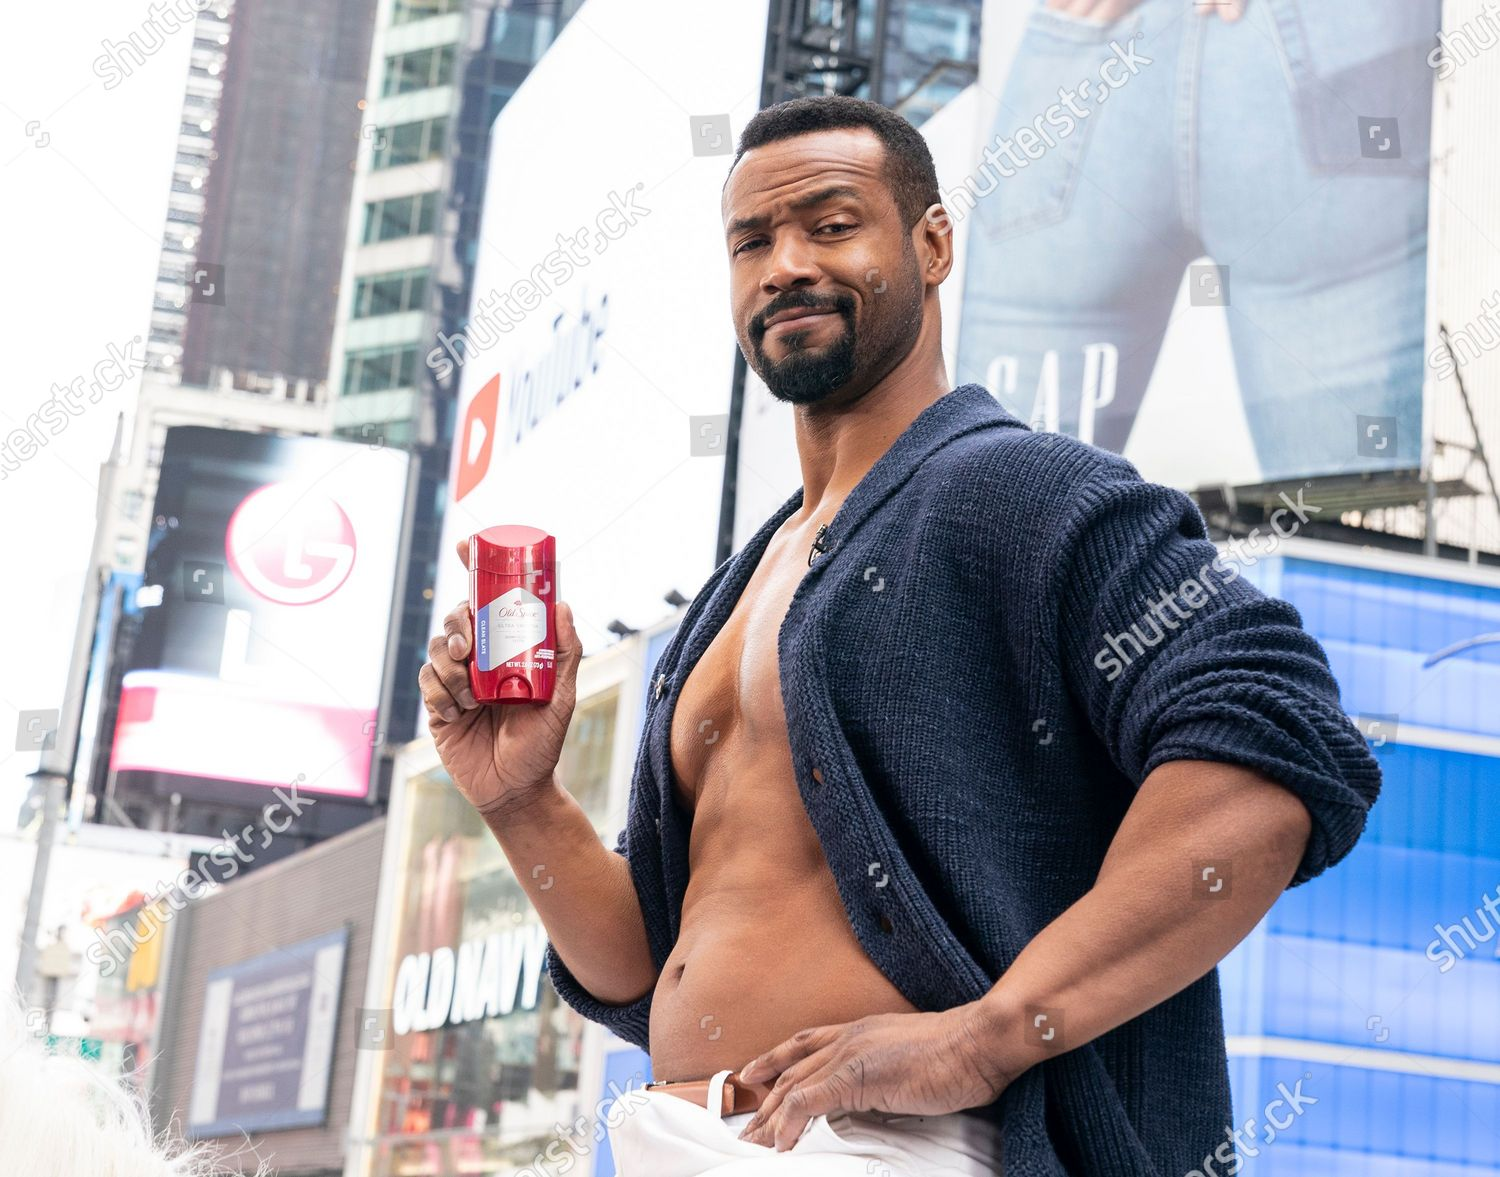 Foto stock a tema NY: Old Spice promotion on Times Square, New York, United States - 23 Jan 2020